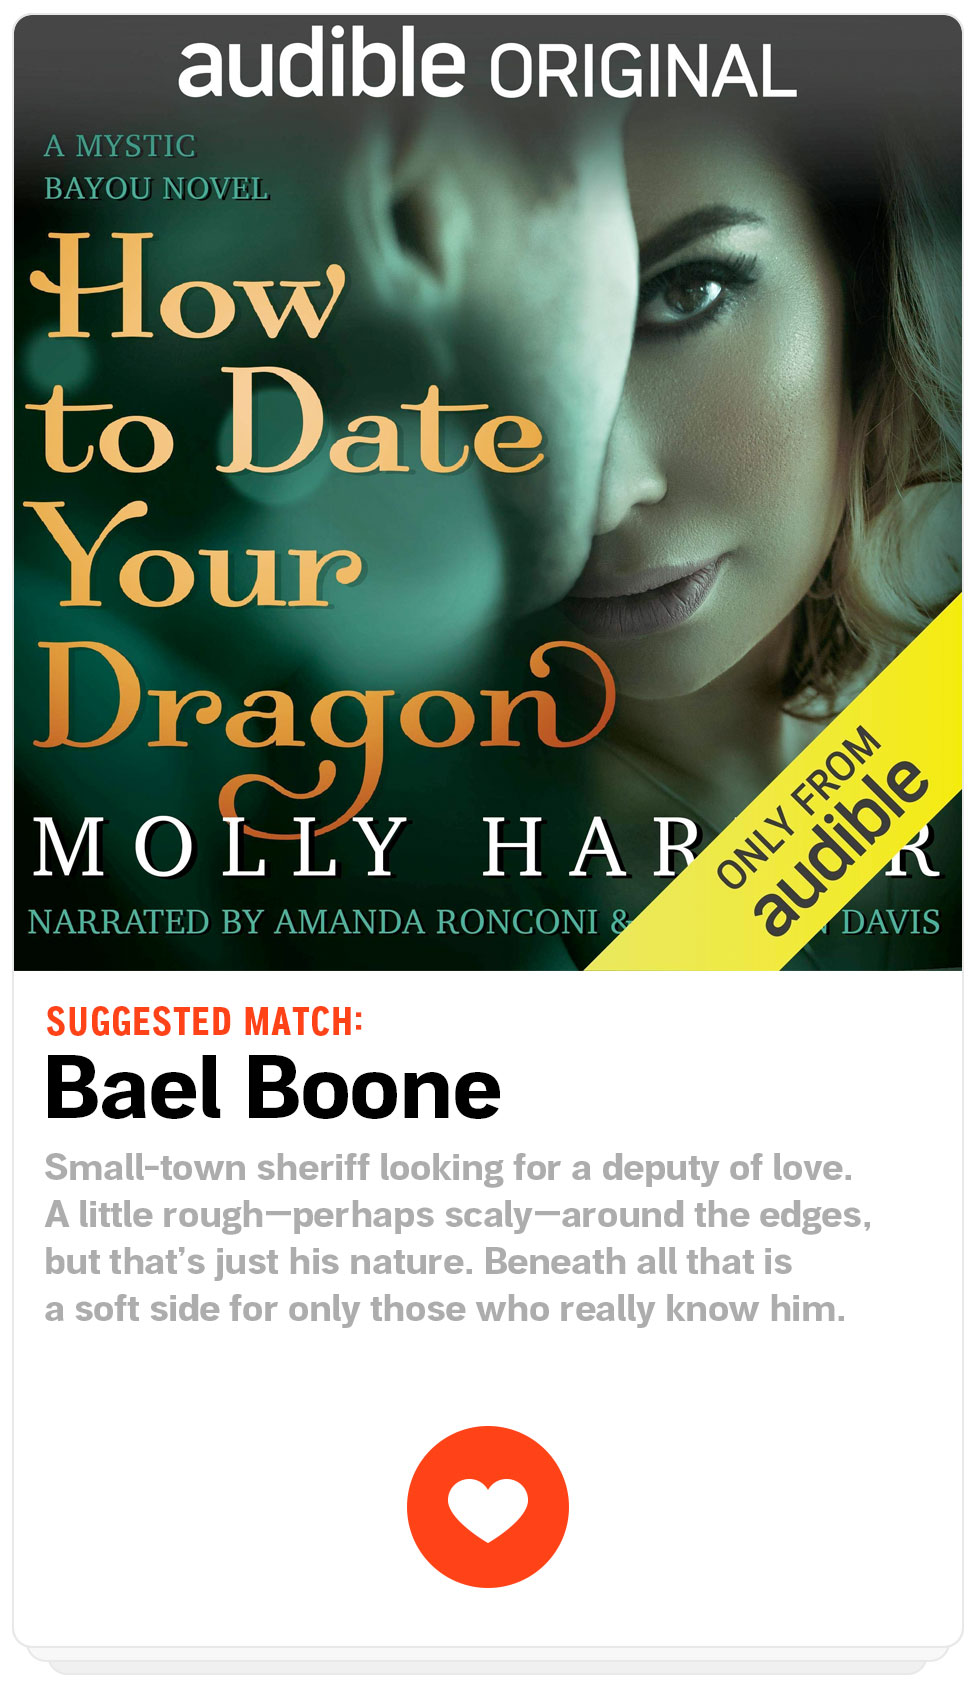 Suggested Match: Bael Boone